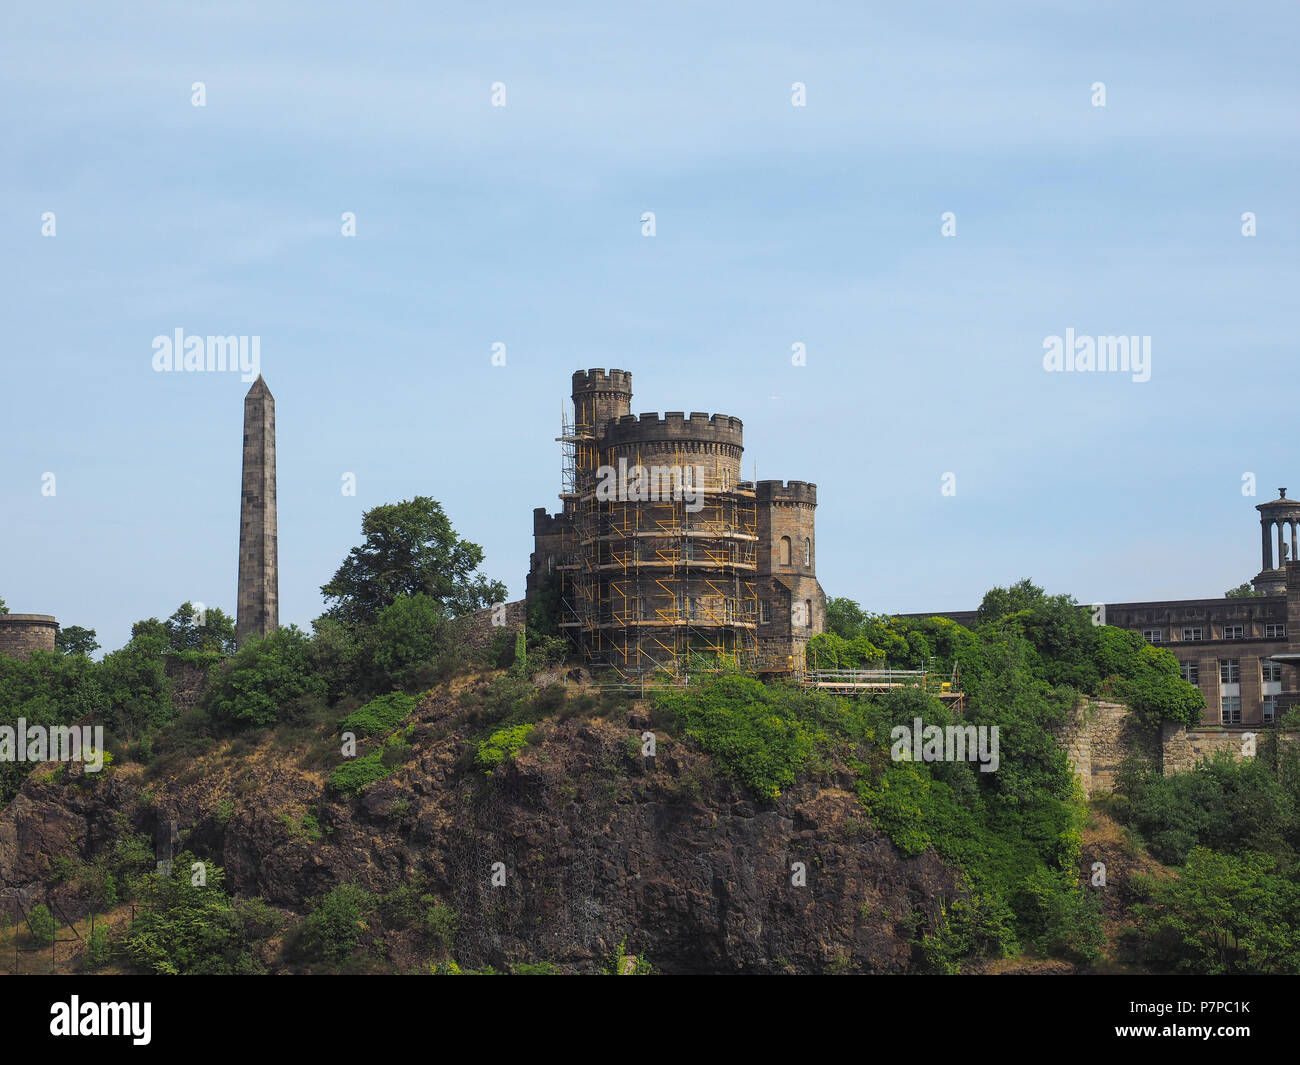 Governor House and Political Martyrs obelisk on Calton Hill in Edinburgh, UK Stock Photo